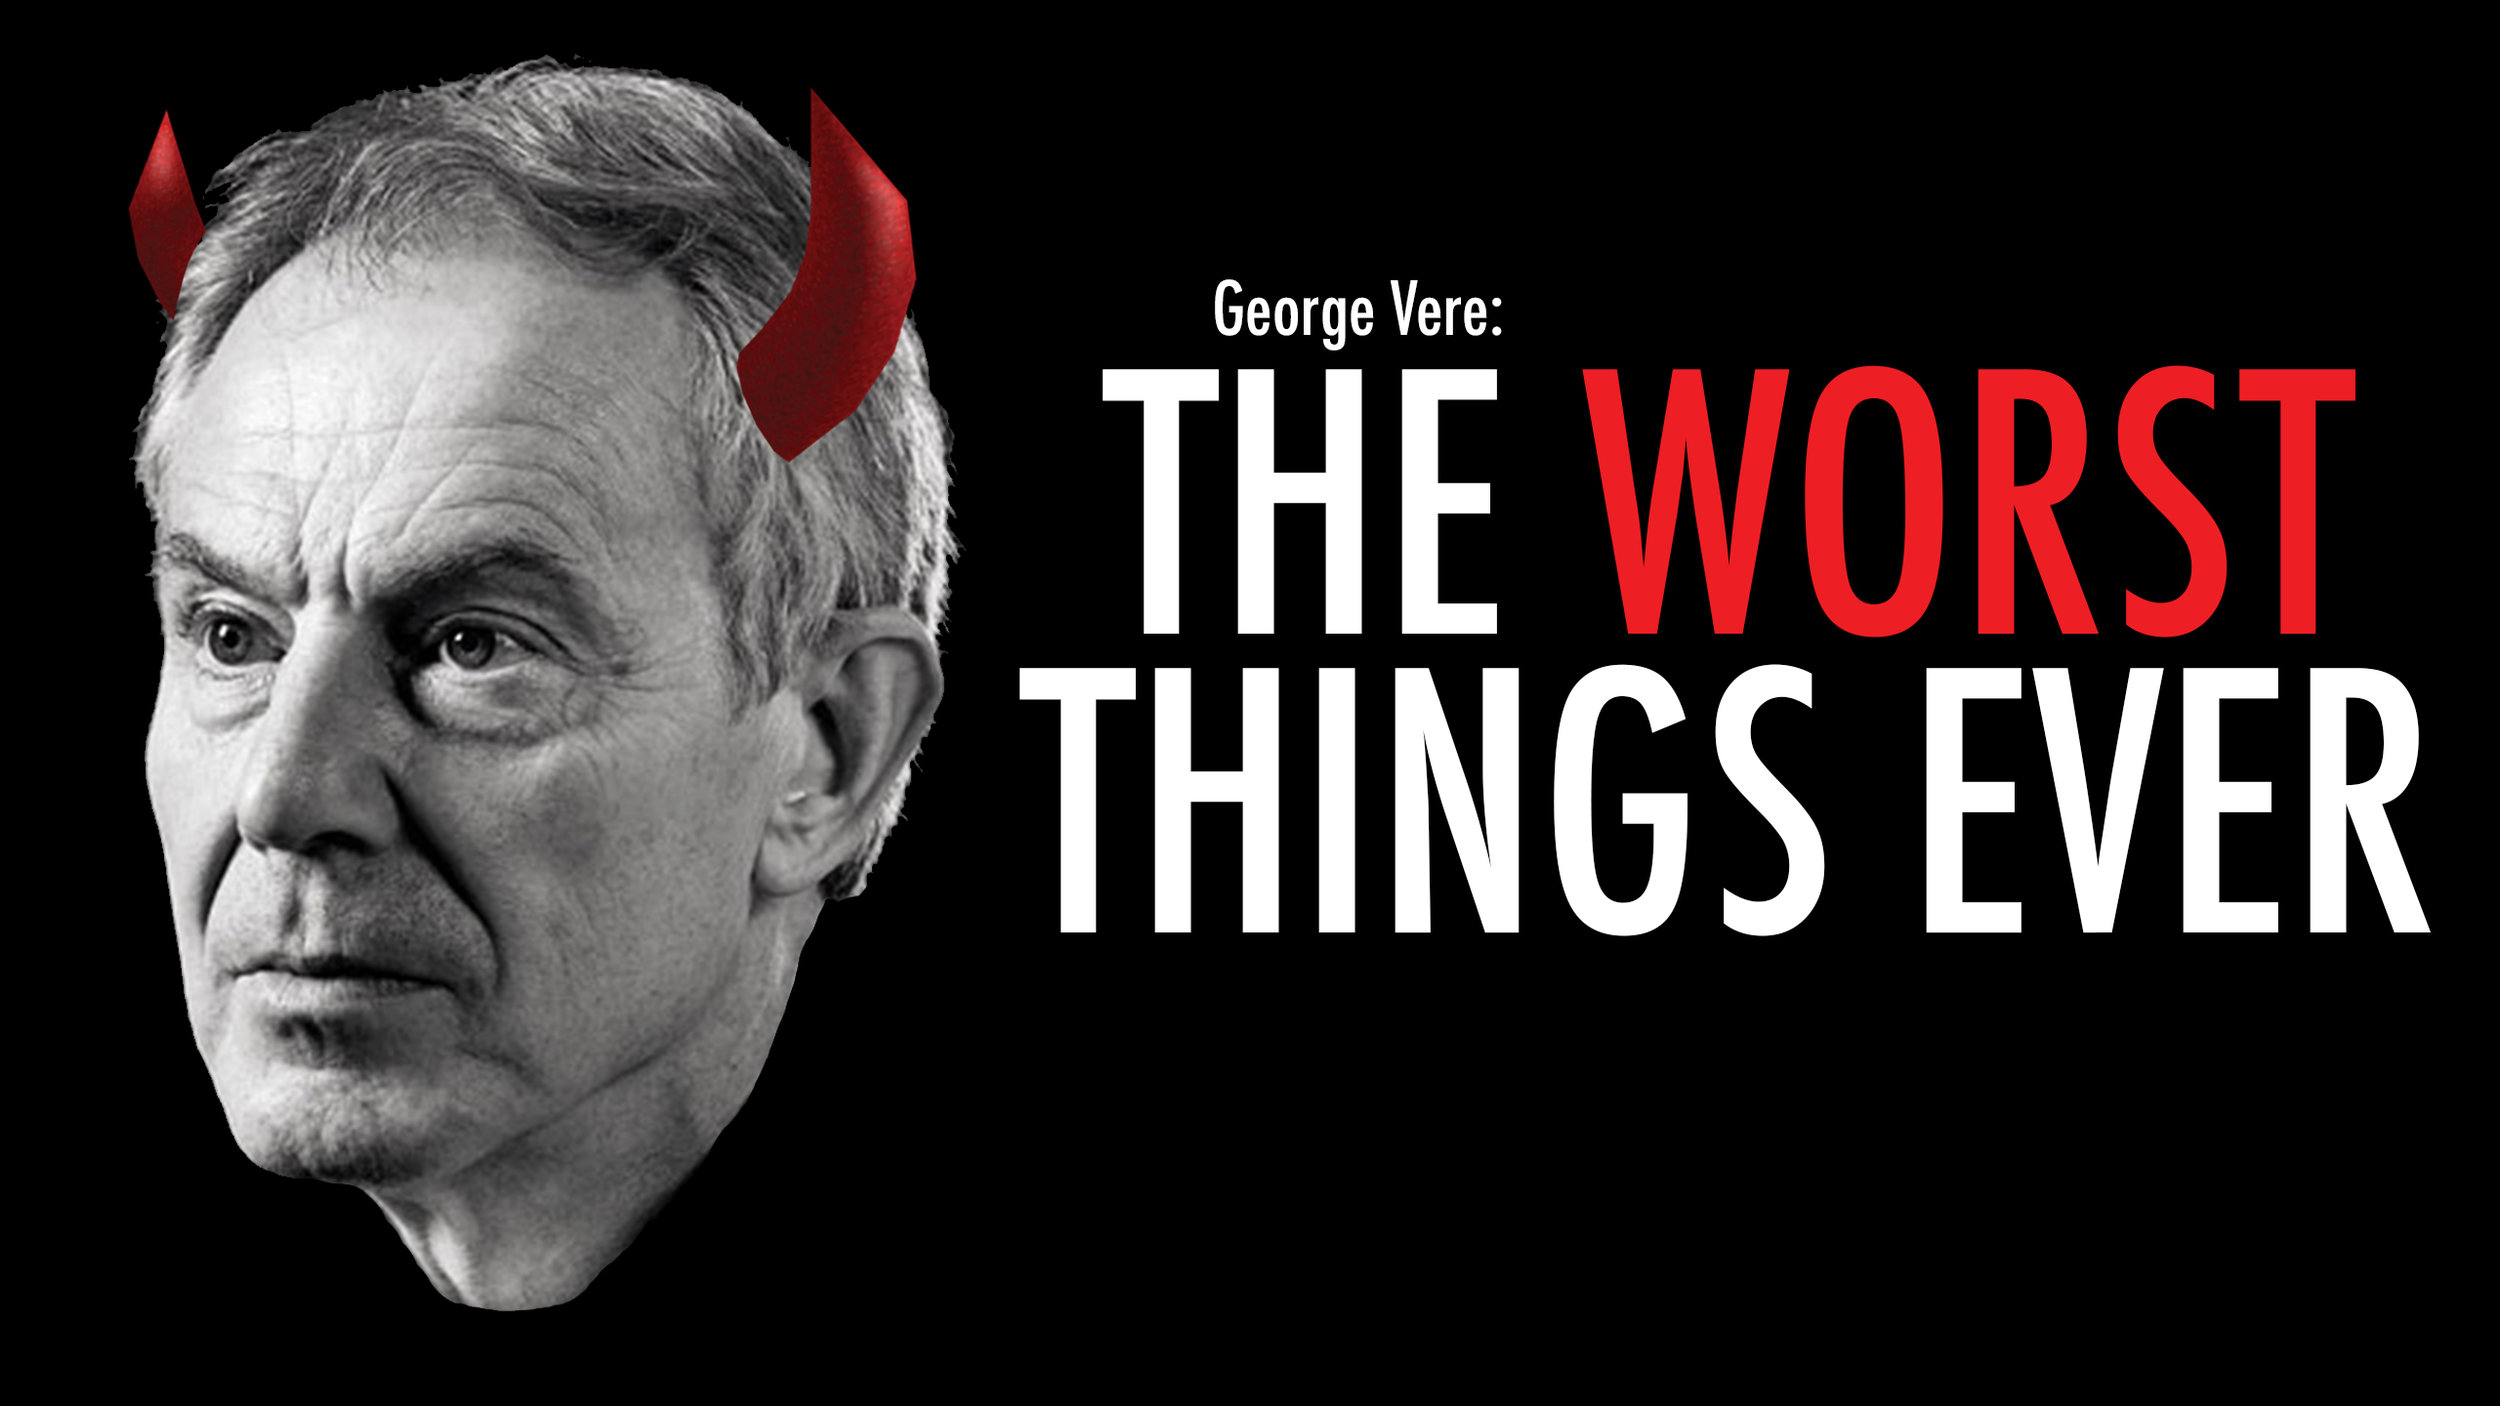 George Vere: The Worst Things Ever